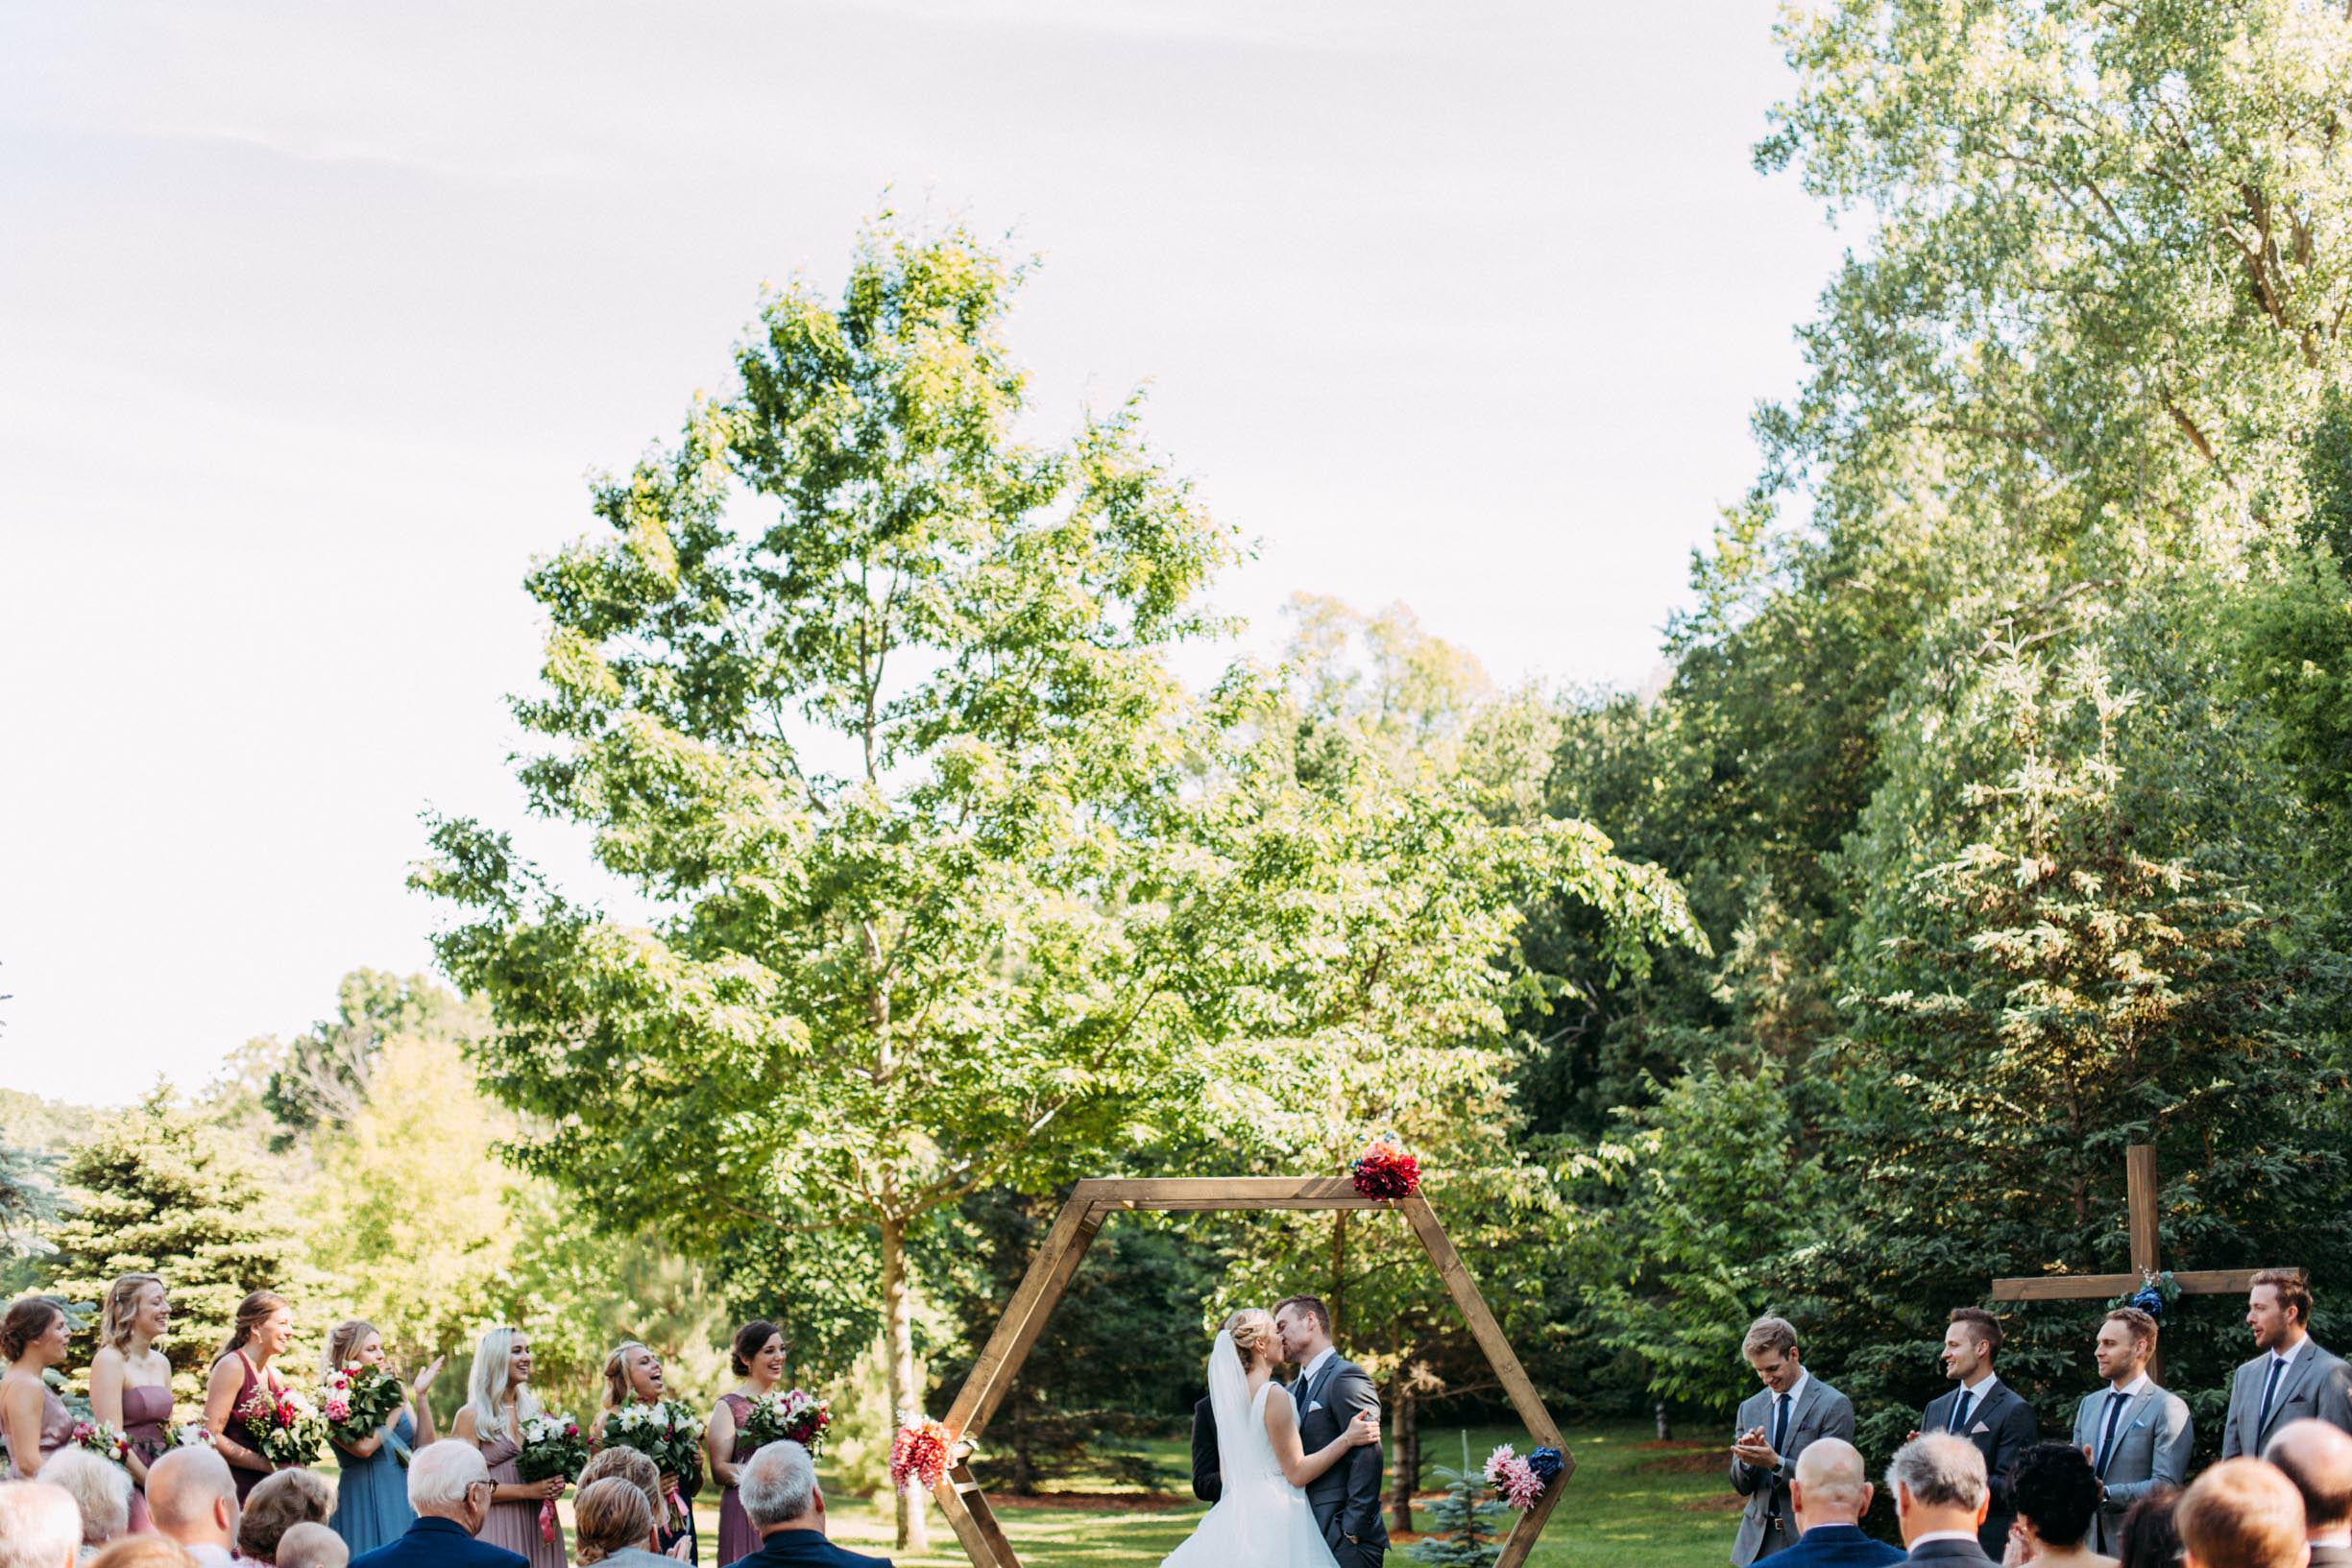 Carley_Trammell_GreenBay_Backyard_Wedding_Blog-75.jpg